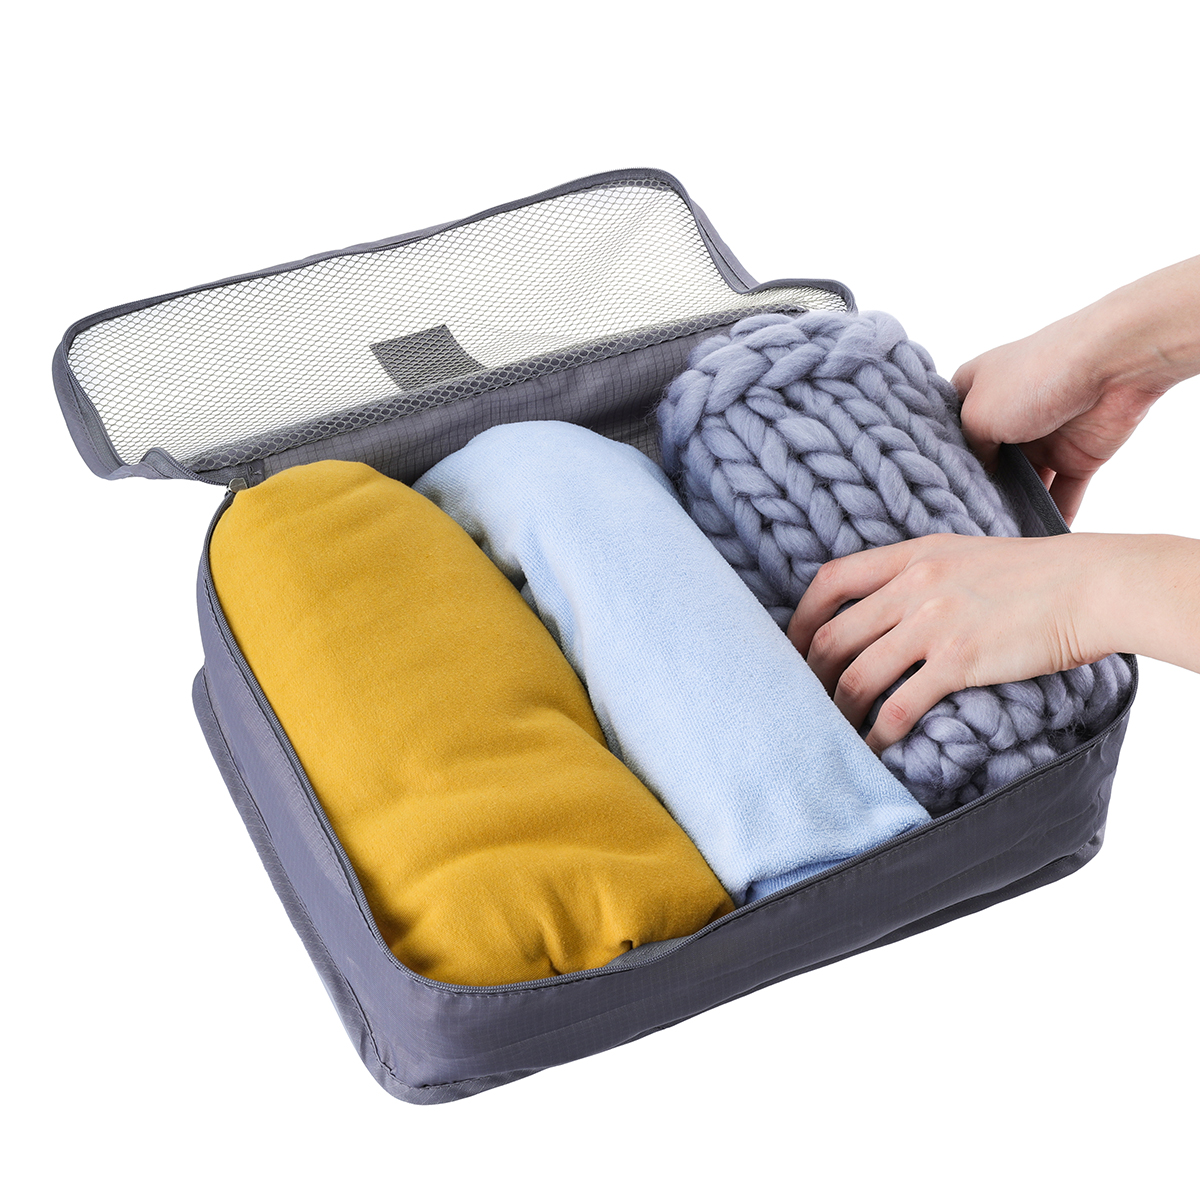 SaicleHome 6 PCS Oxford Travel Waterproof Storage Bag Large Capacity Folding Bag Oxford Container